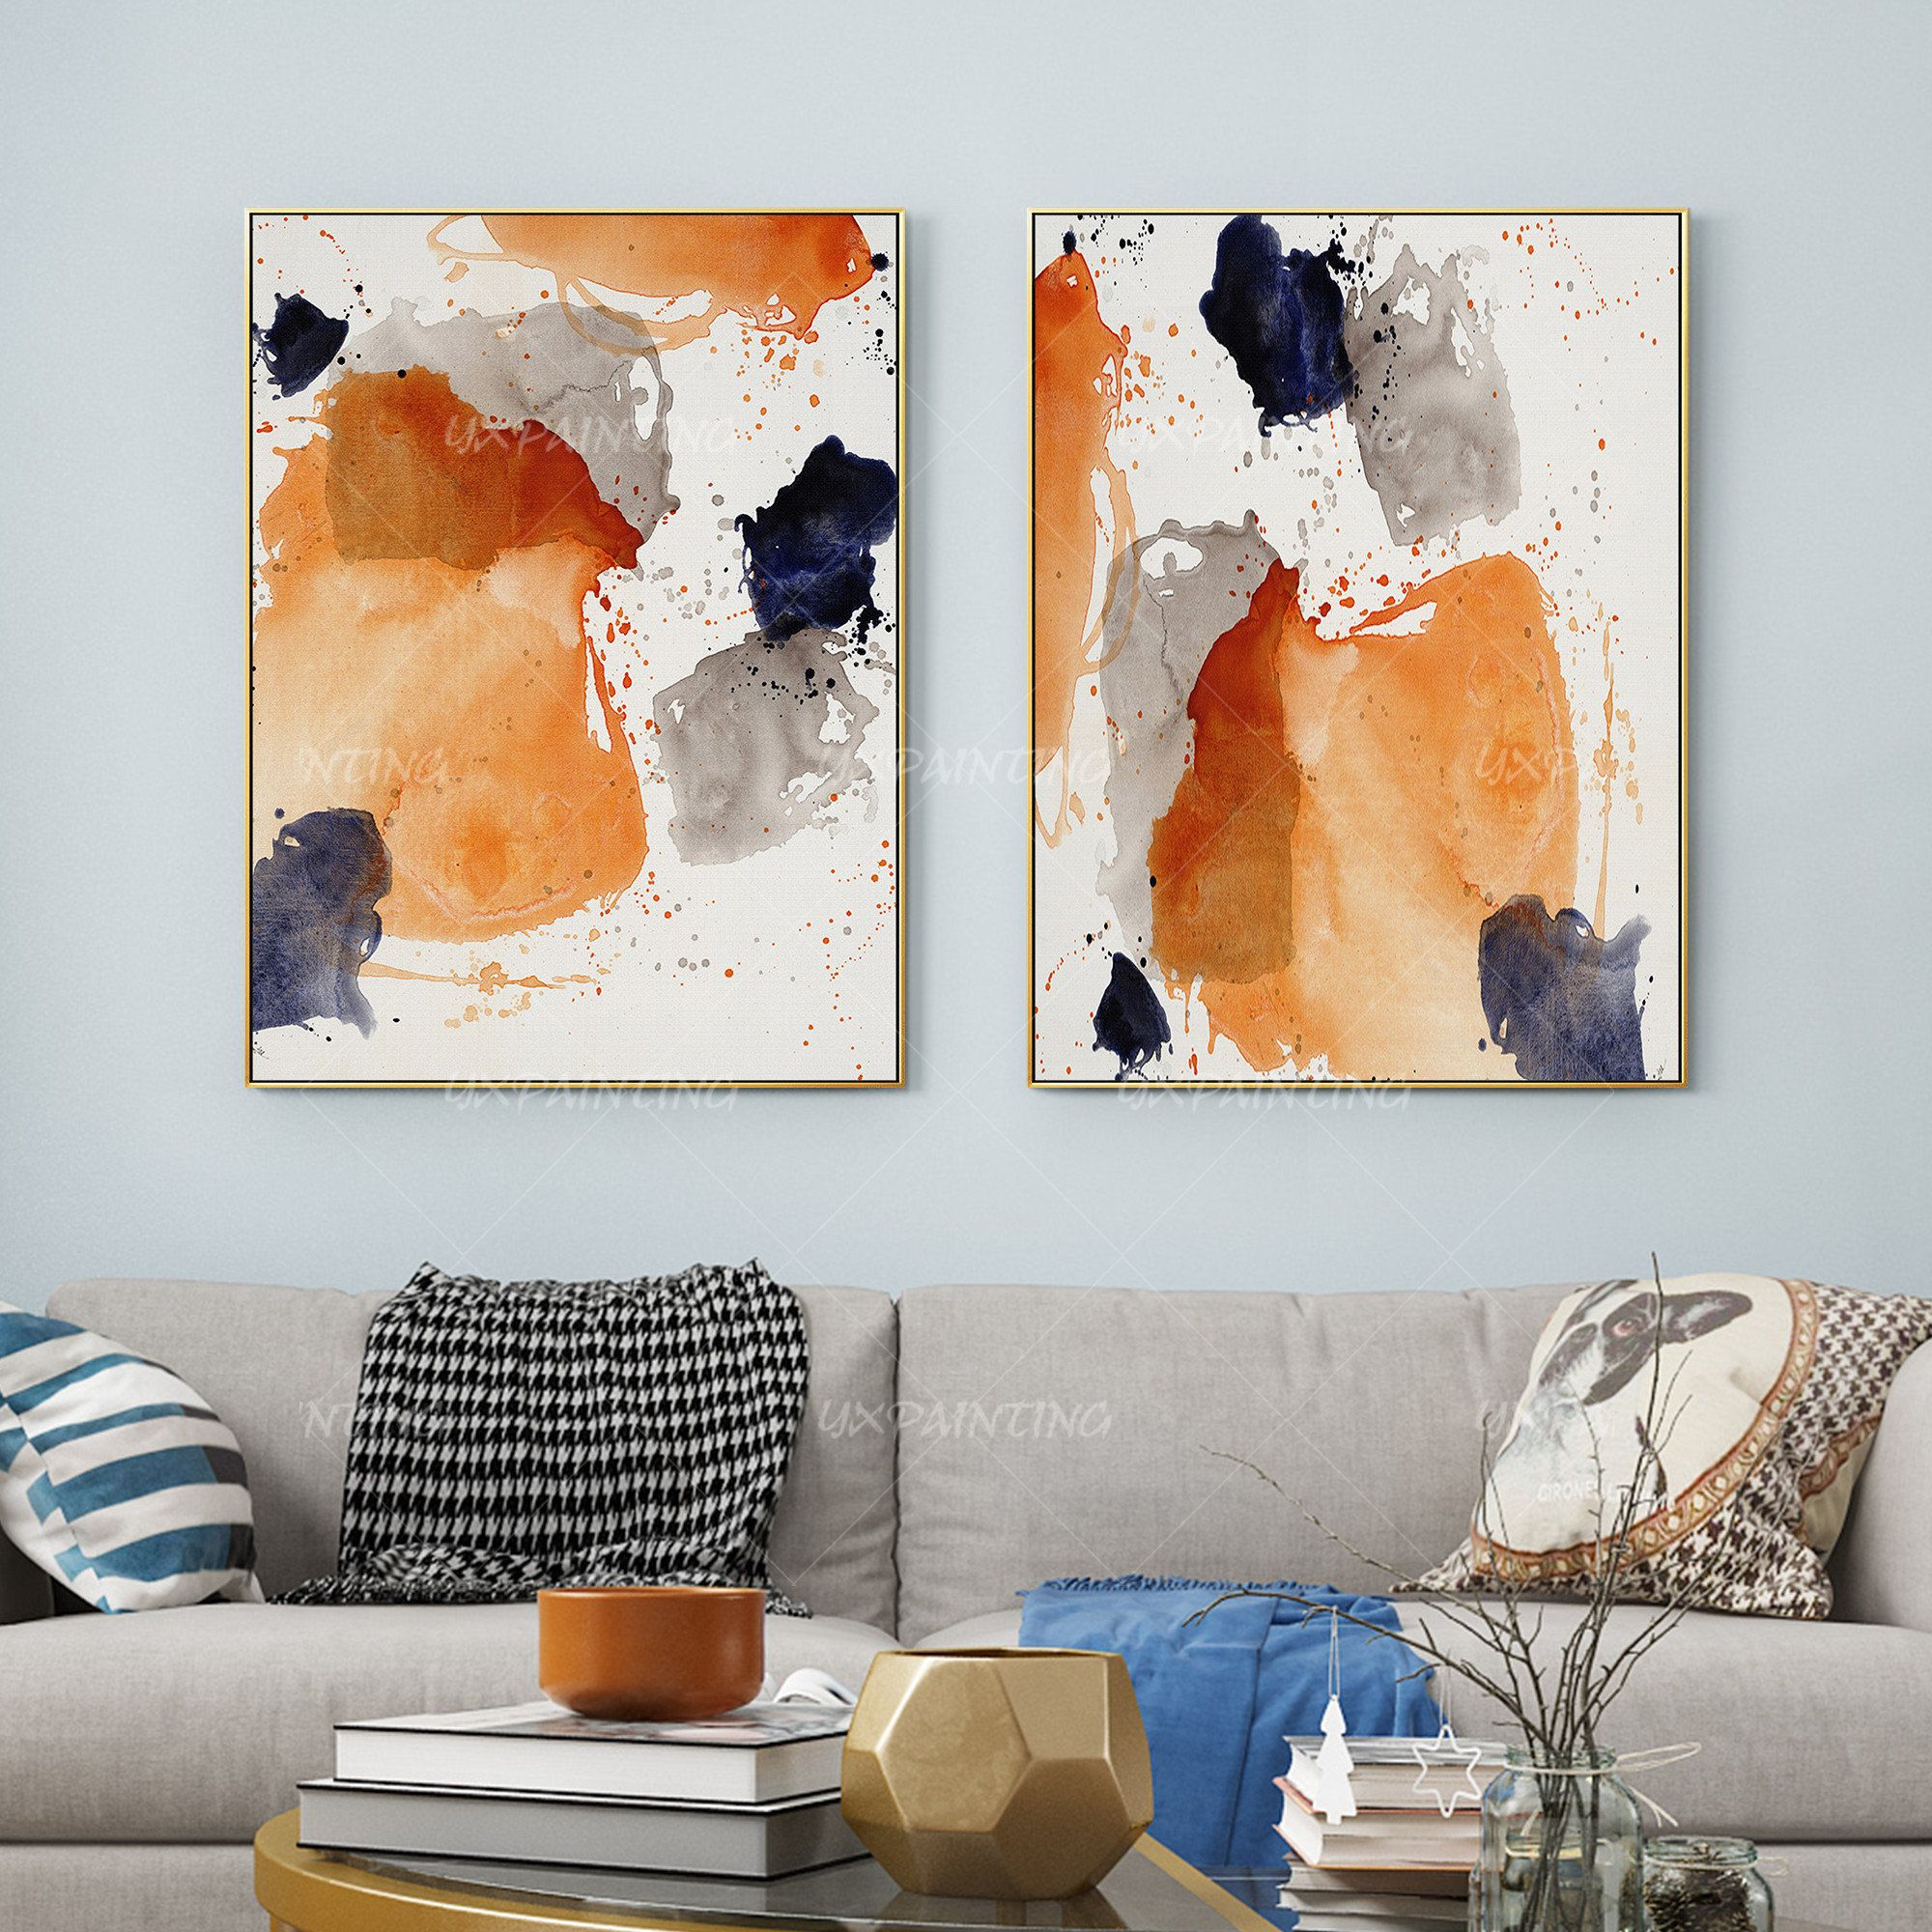 Set Of 2 Wall Art Print On Canvas 2 Pieces Abstract Yxpainting Etsy In 2021 Abstract Wall Art Living Room Wall Art Prints Grey Wall Art